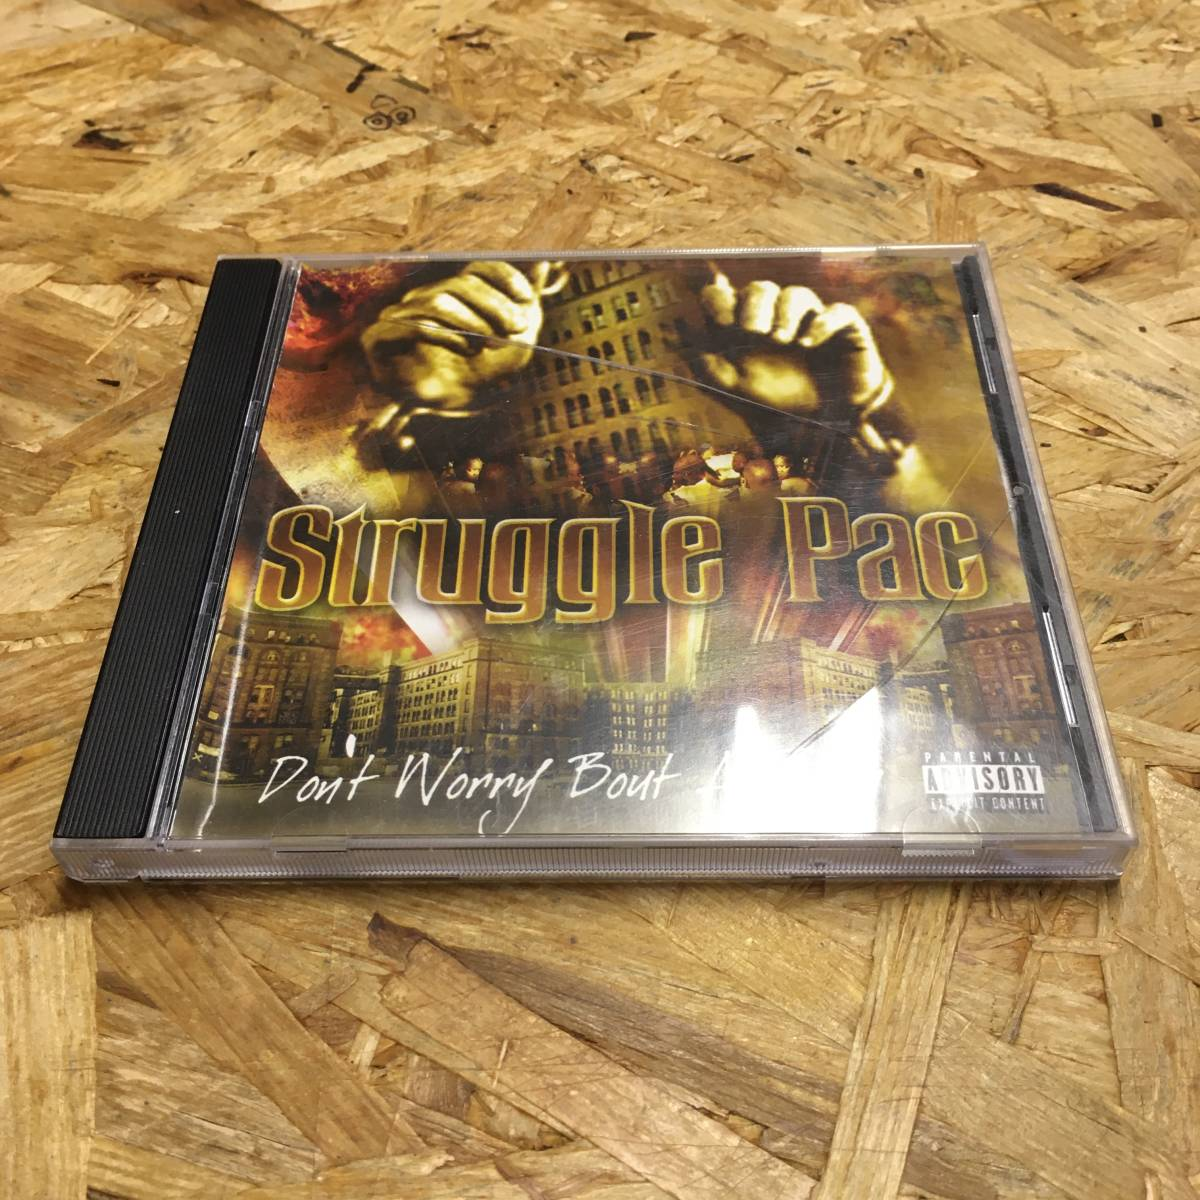 HIPHOP STRUGGLE-PAC - DON'T WORRY BOUT A THANG CD 中古品